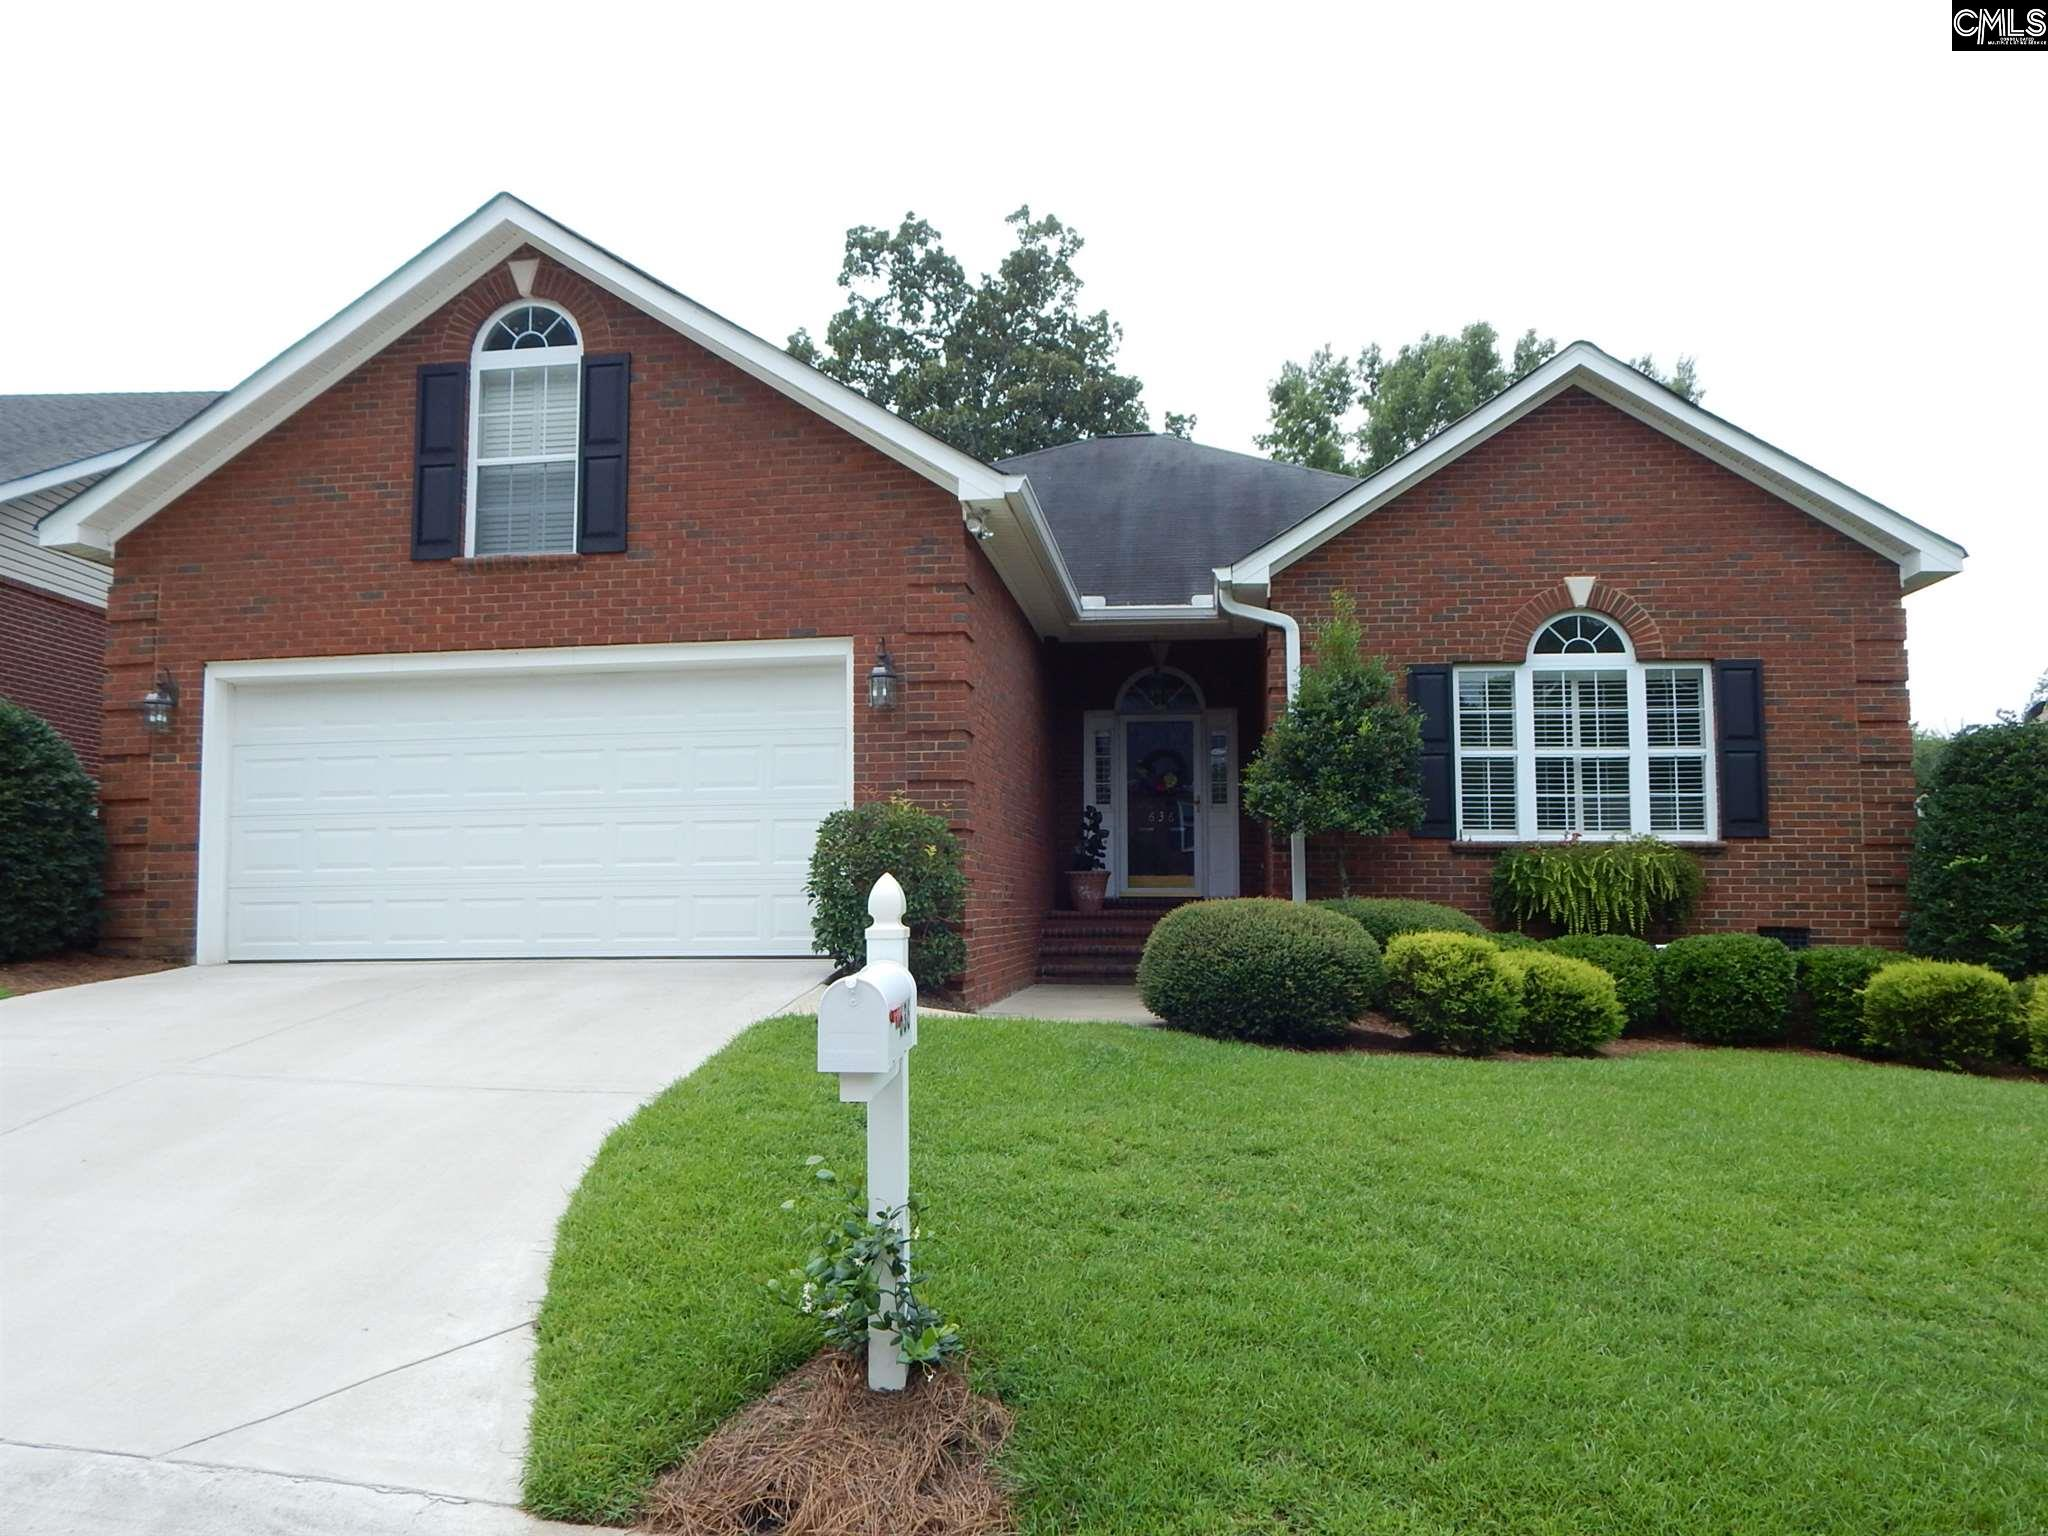 636 Willowood Chapin, SC 29036